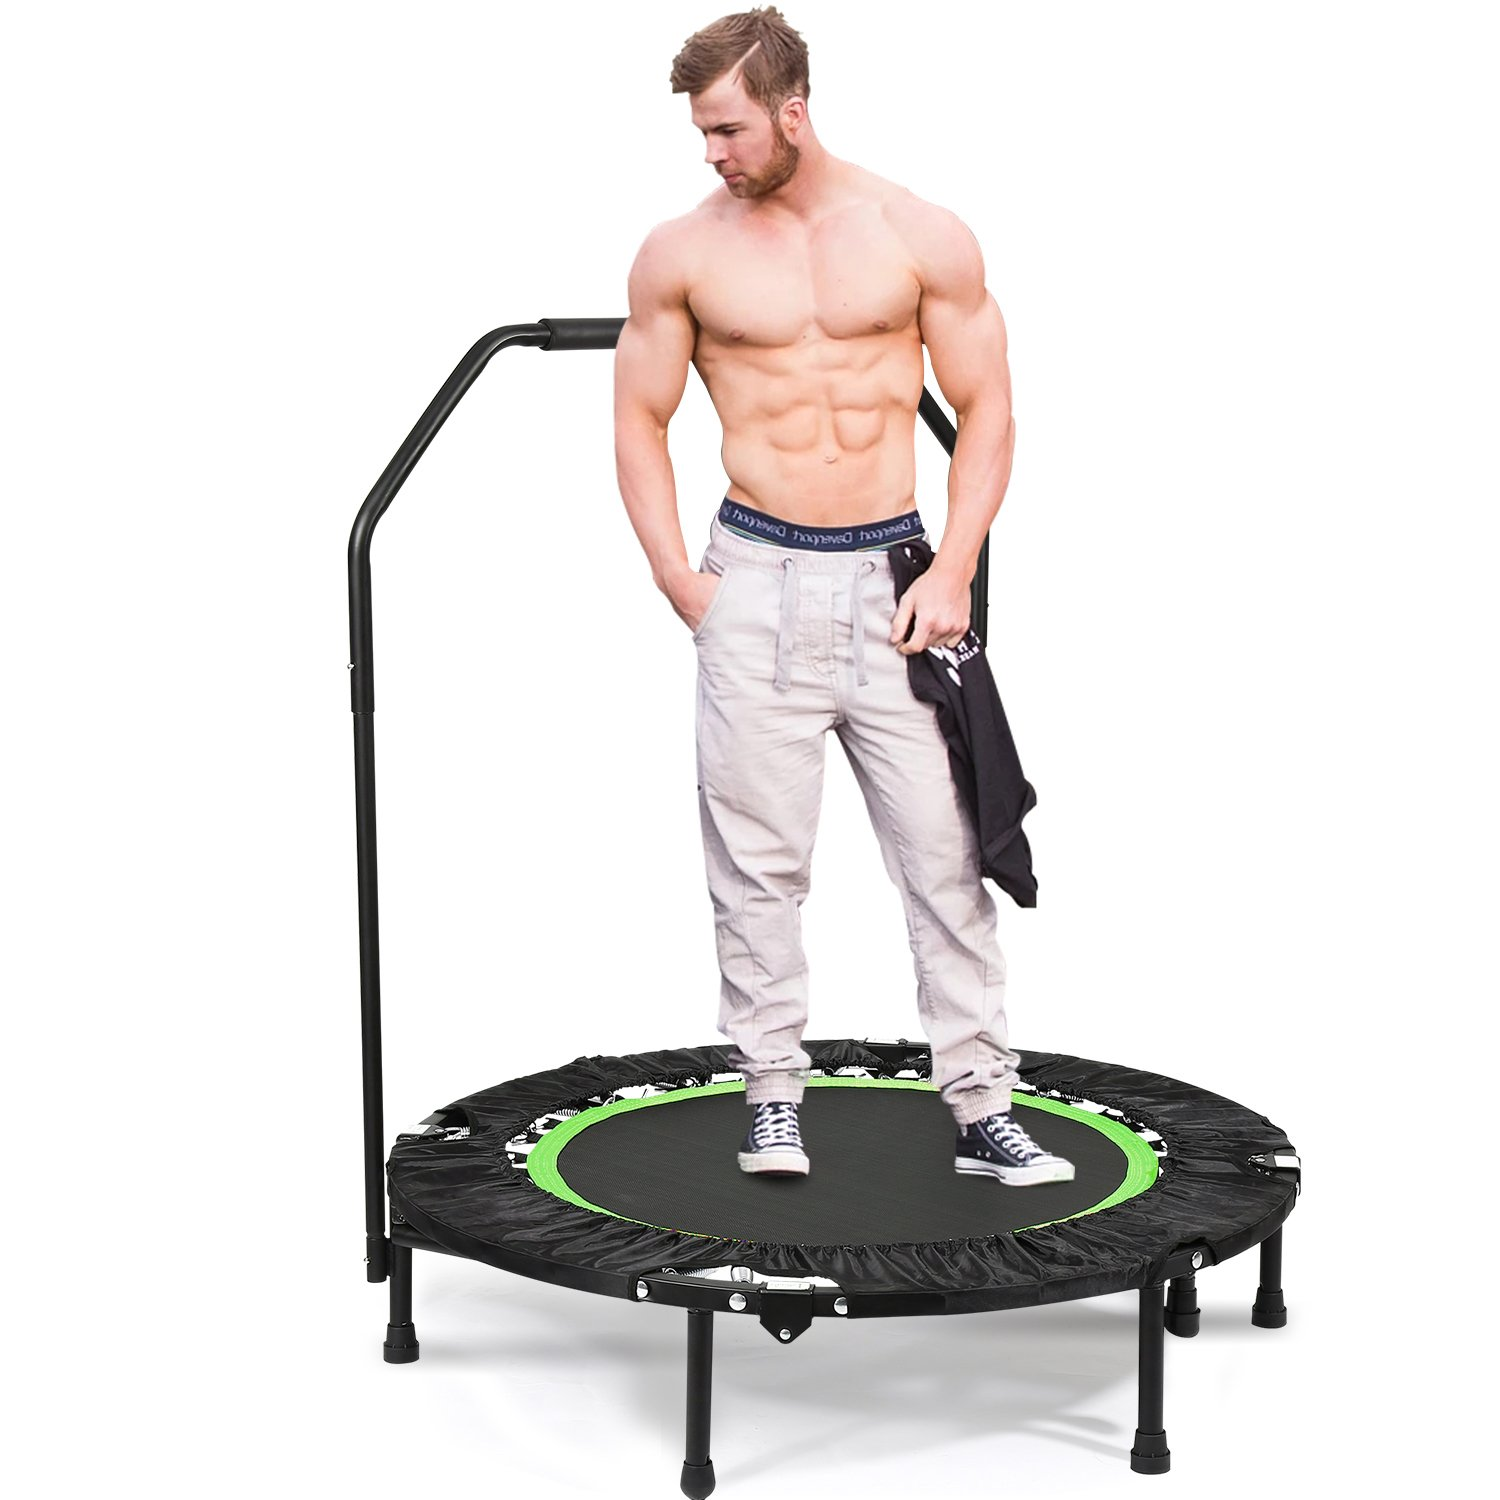 ANCHEER Foldable 40'' Mini Trampoline Rebounder, Max Load 300lbs Rebounder Trampoline Exercise Fitness Trampoline for Indoor/Garden/Workout Cardio